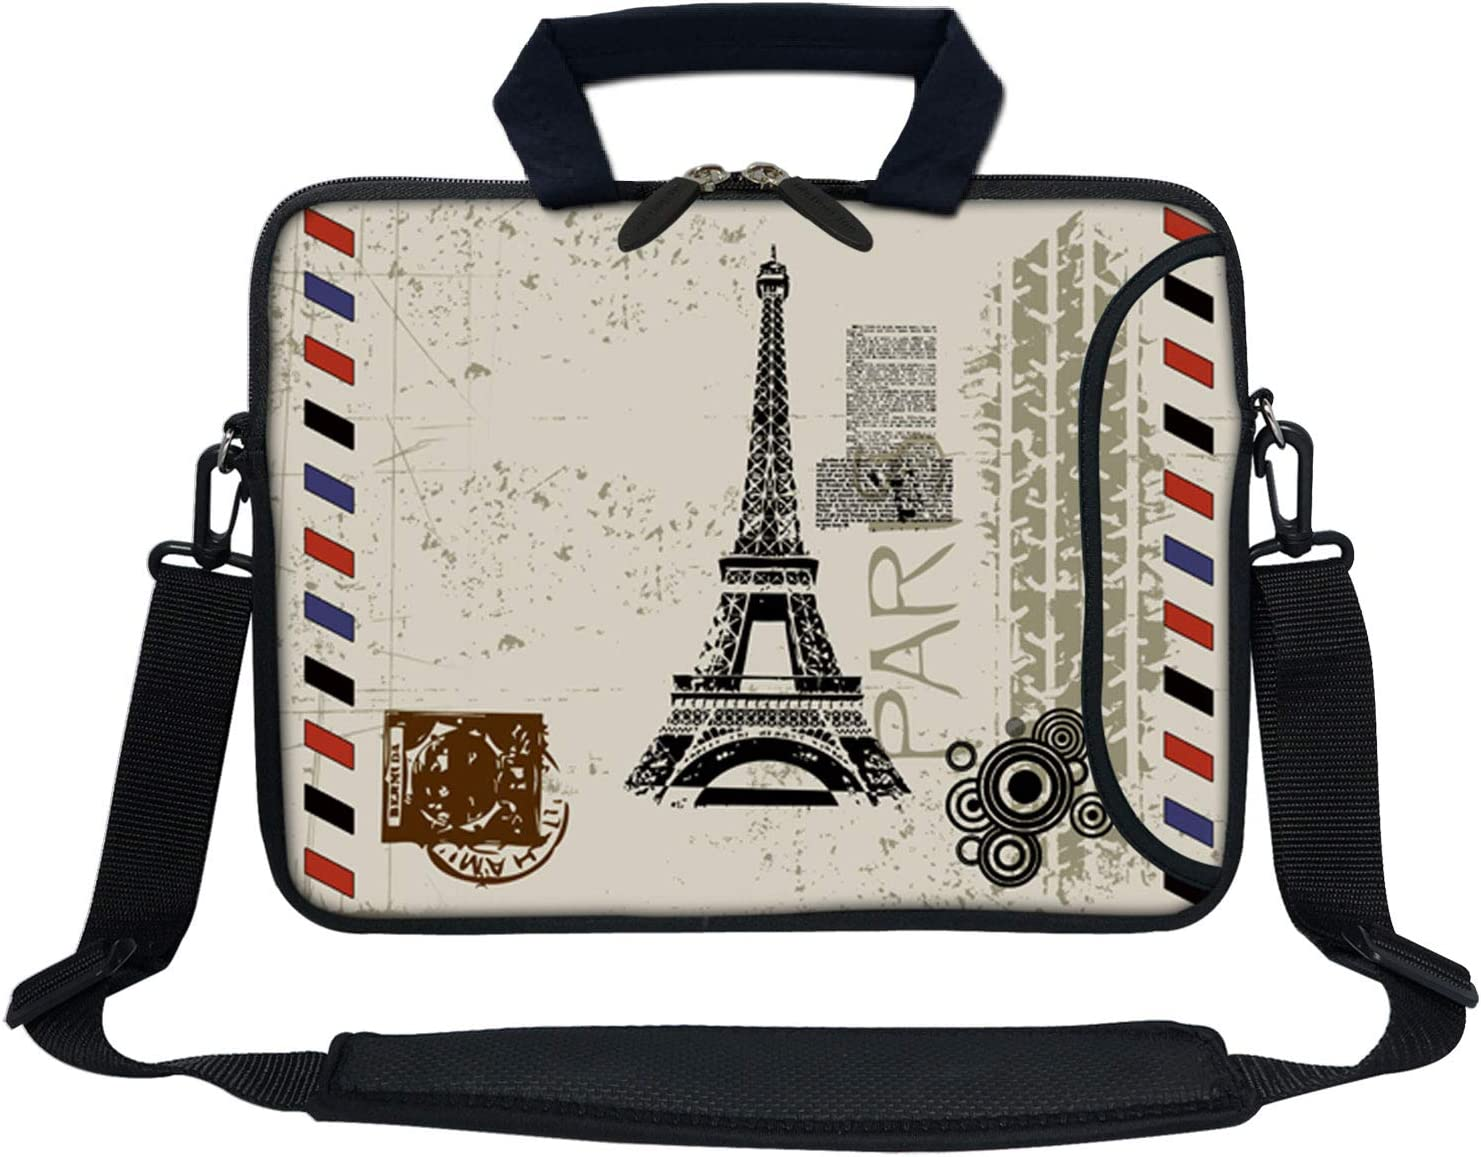 Meffort Inc 13 Inch Neoprene Laptop Bag with Extra Side Pocket Fits for 12.5 to 13.3 Inch Size Computer - Paris Eiffel Tower